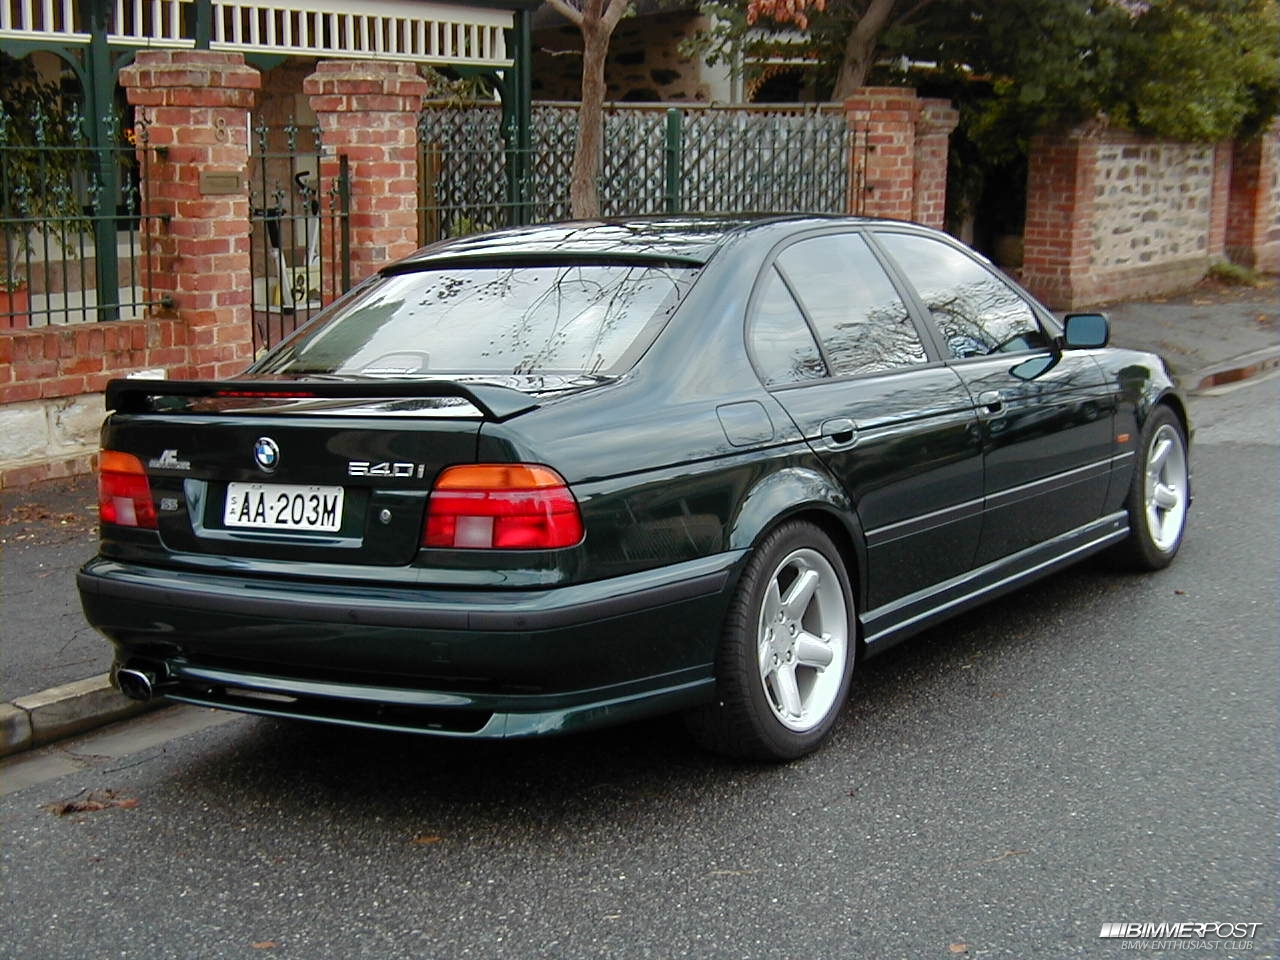 steveaus 39 s 1998 bmw e39 540i schnitzer bimmerpost garage. Black Bedroom Furniture Sets. Home Design Ideas